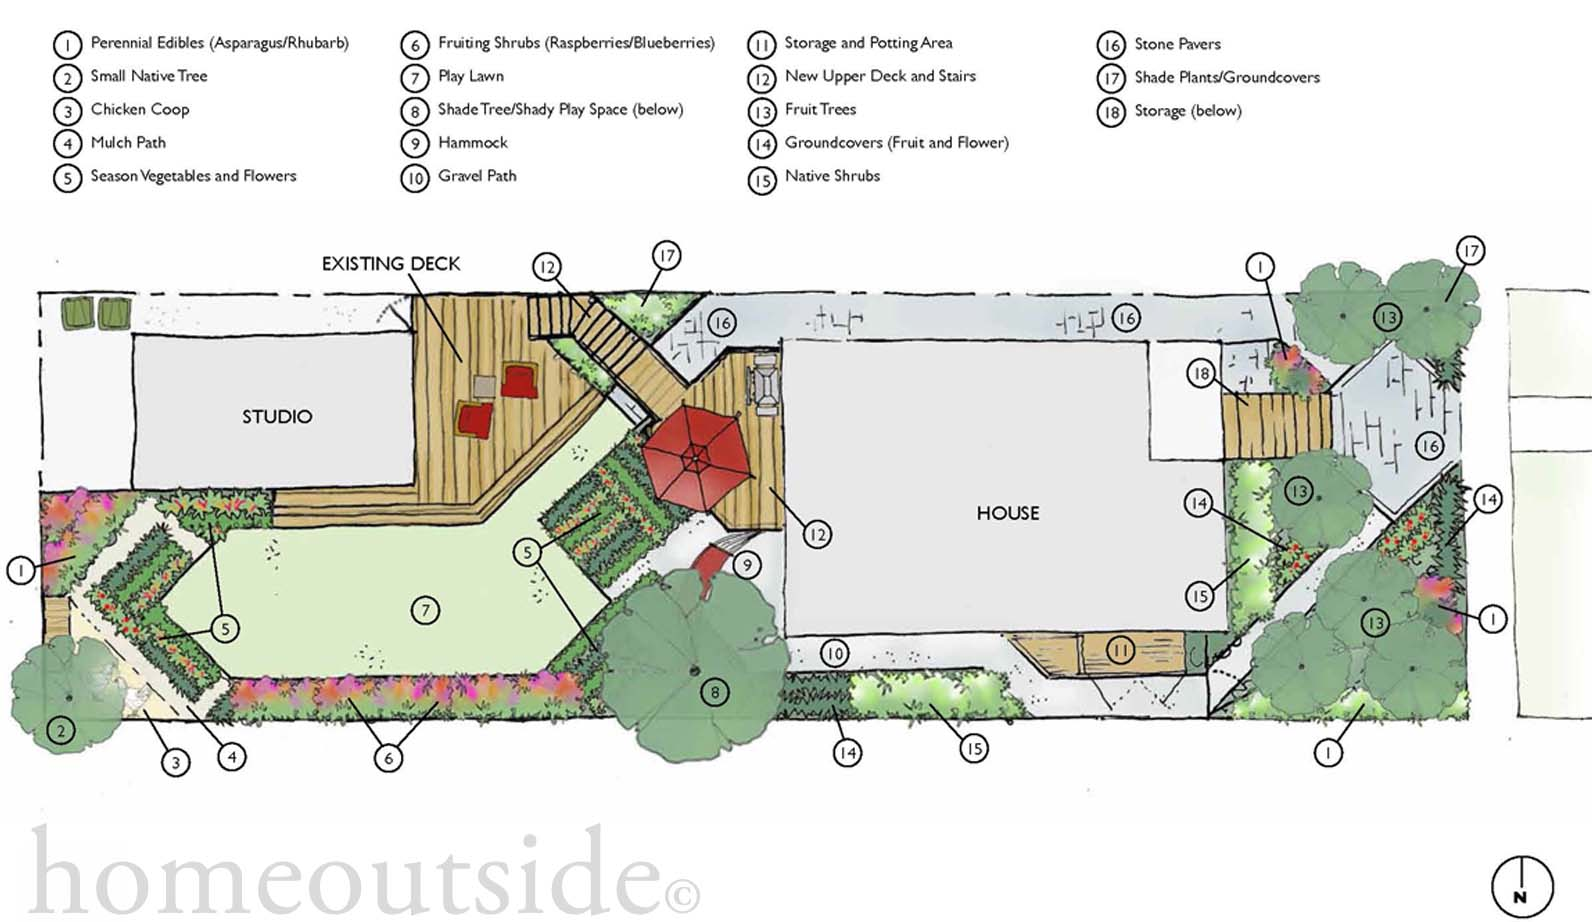 Julie Moir Messervy Design Studio Home Outside Online Landscape Design Urban Farm